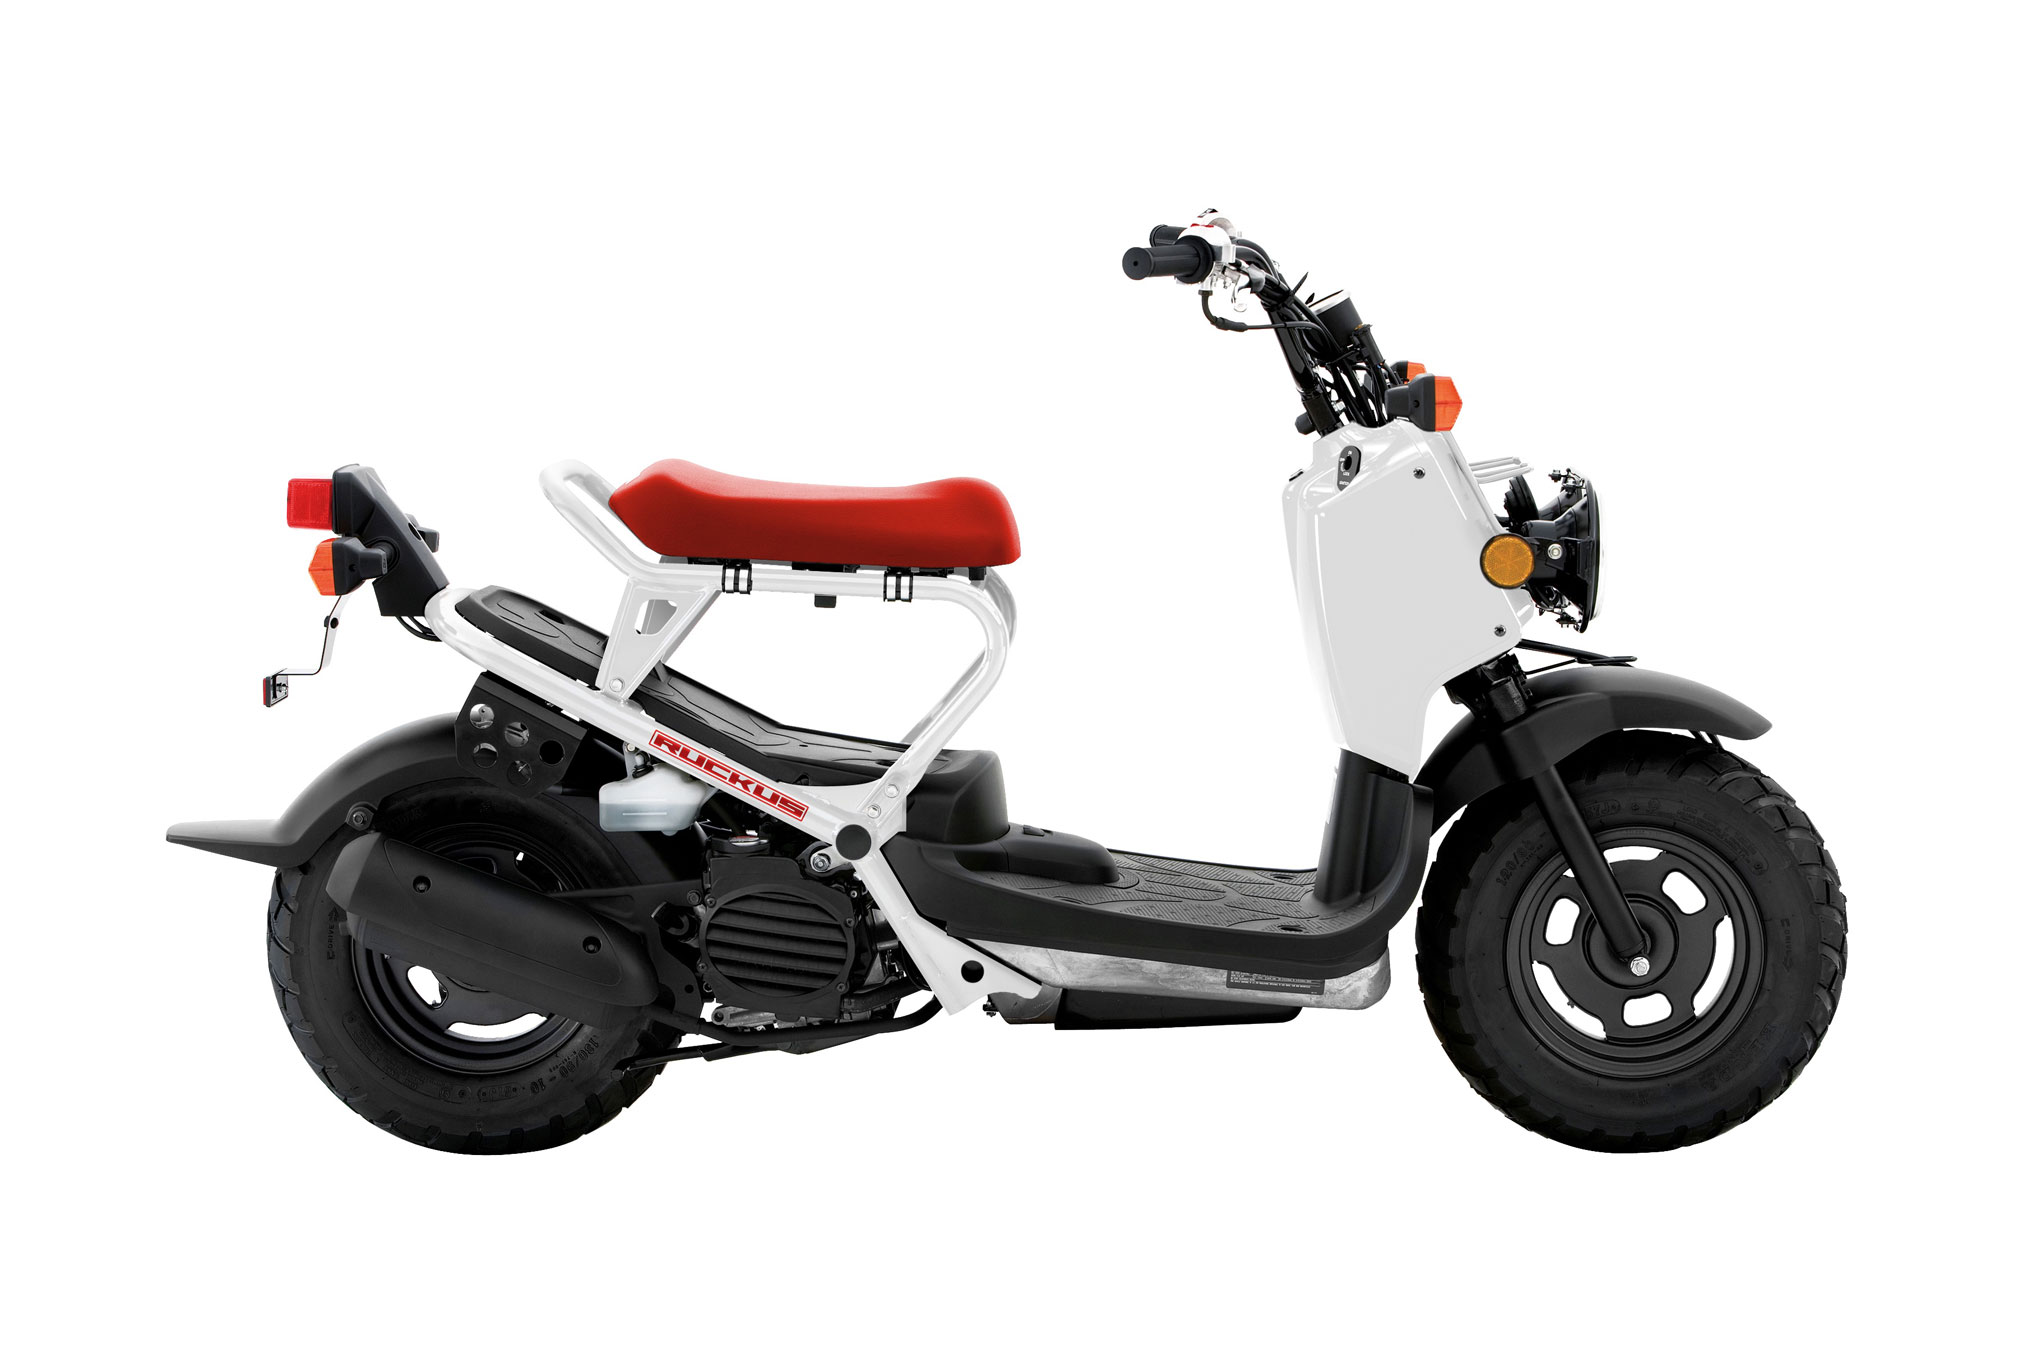 2018 Honda Ruckus Review Total Motorcycle